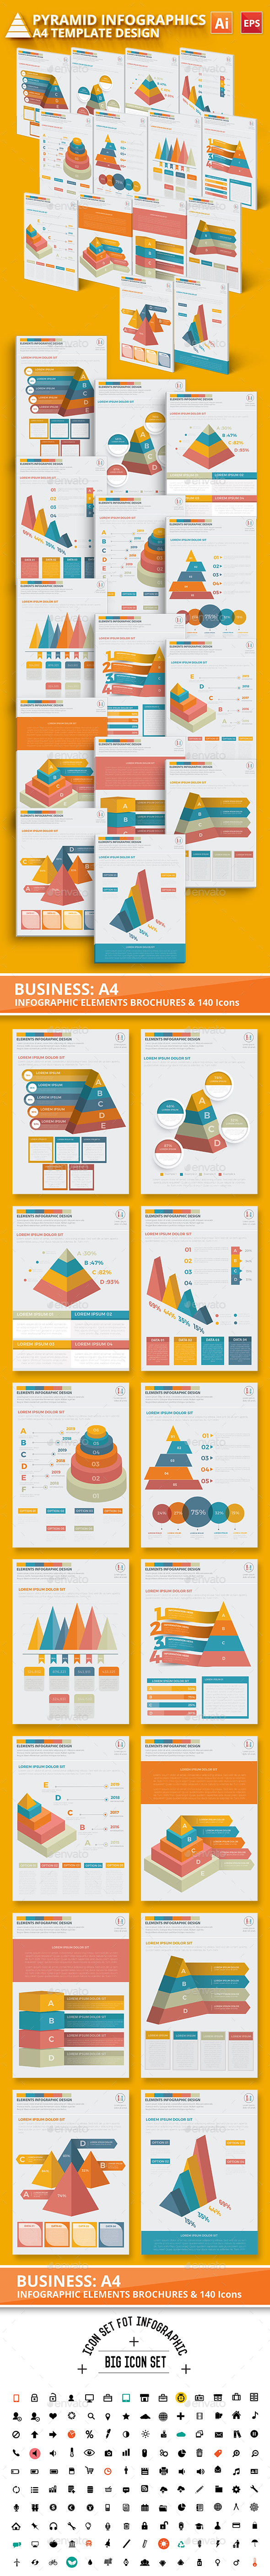 Pyramid Infographic Elements Design - Infographics